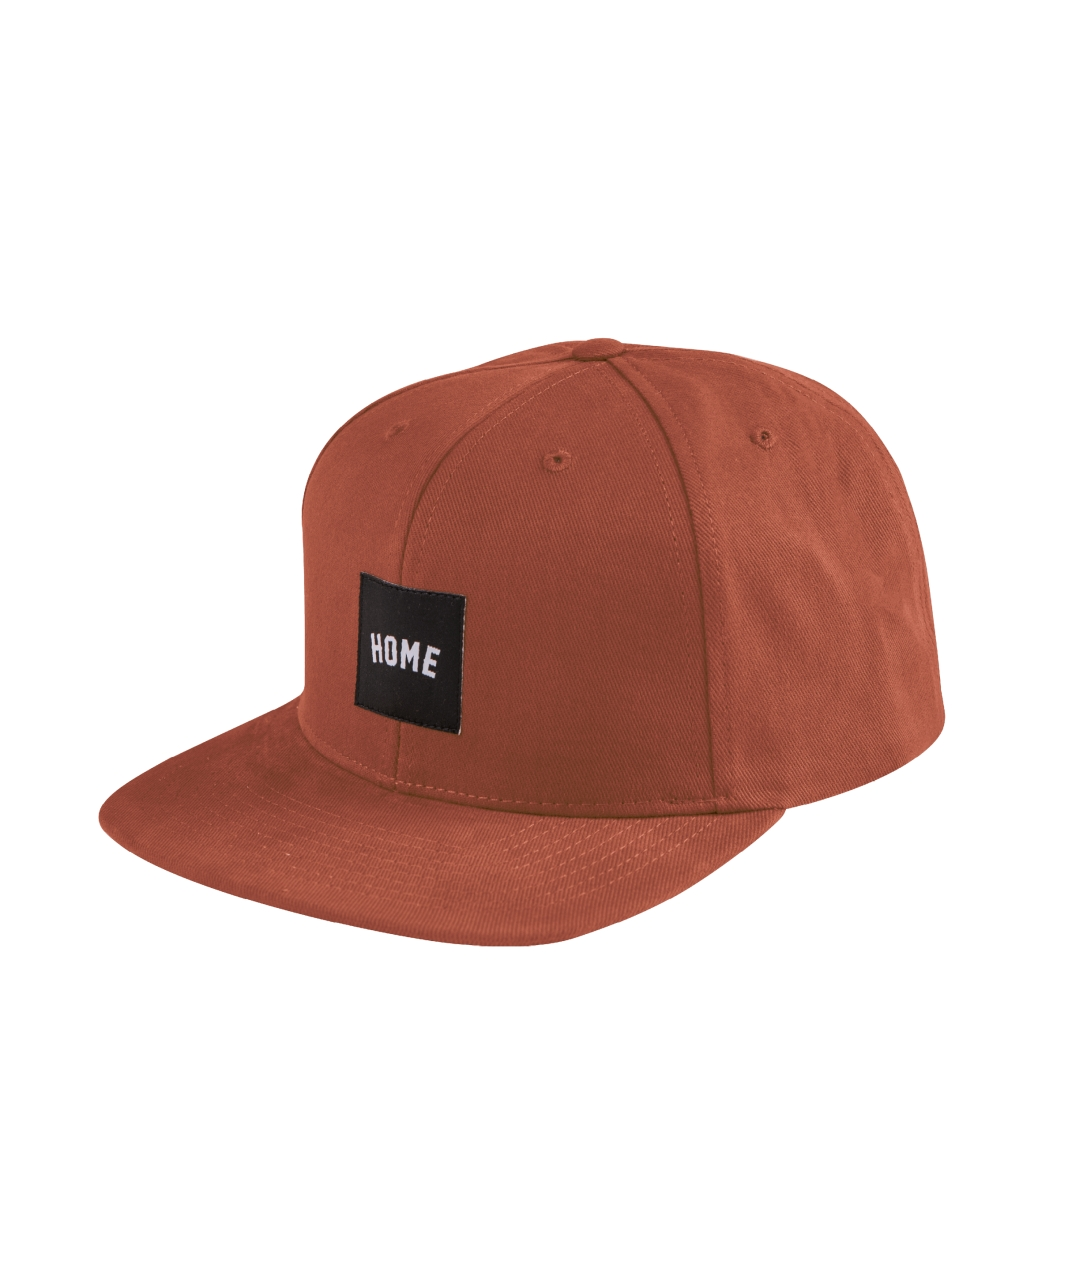 Home Box Logo Snapback Cap